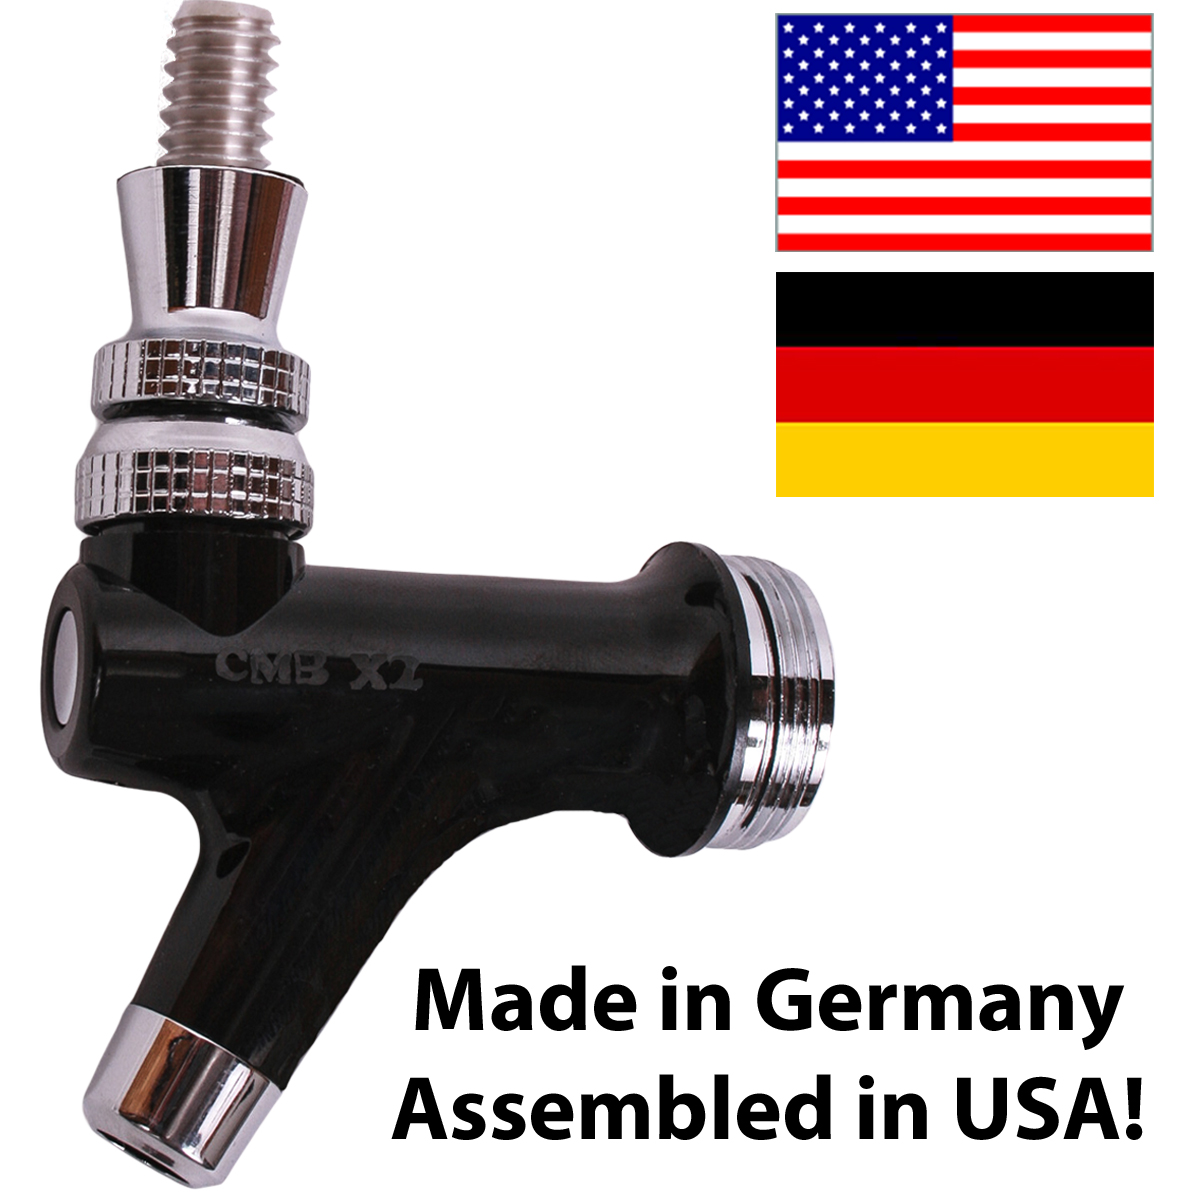 x2 Beer faucet with flags